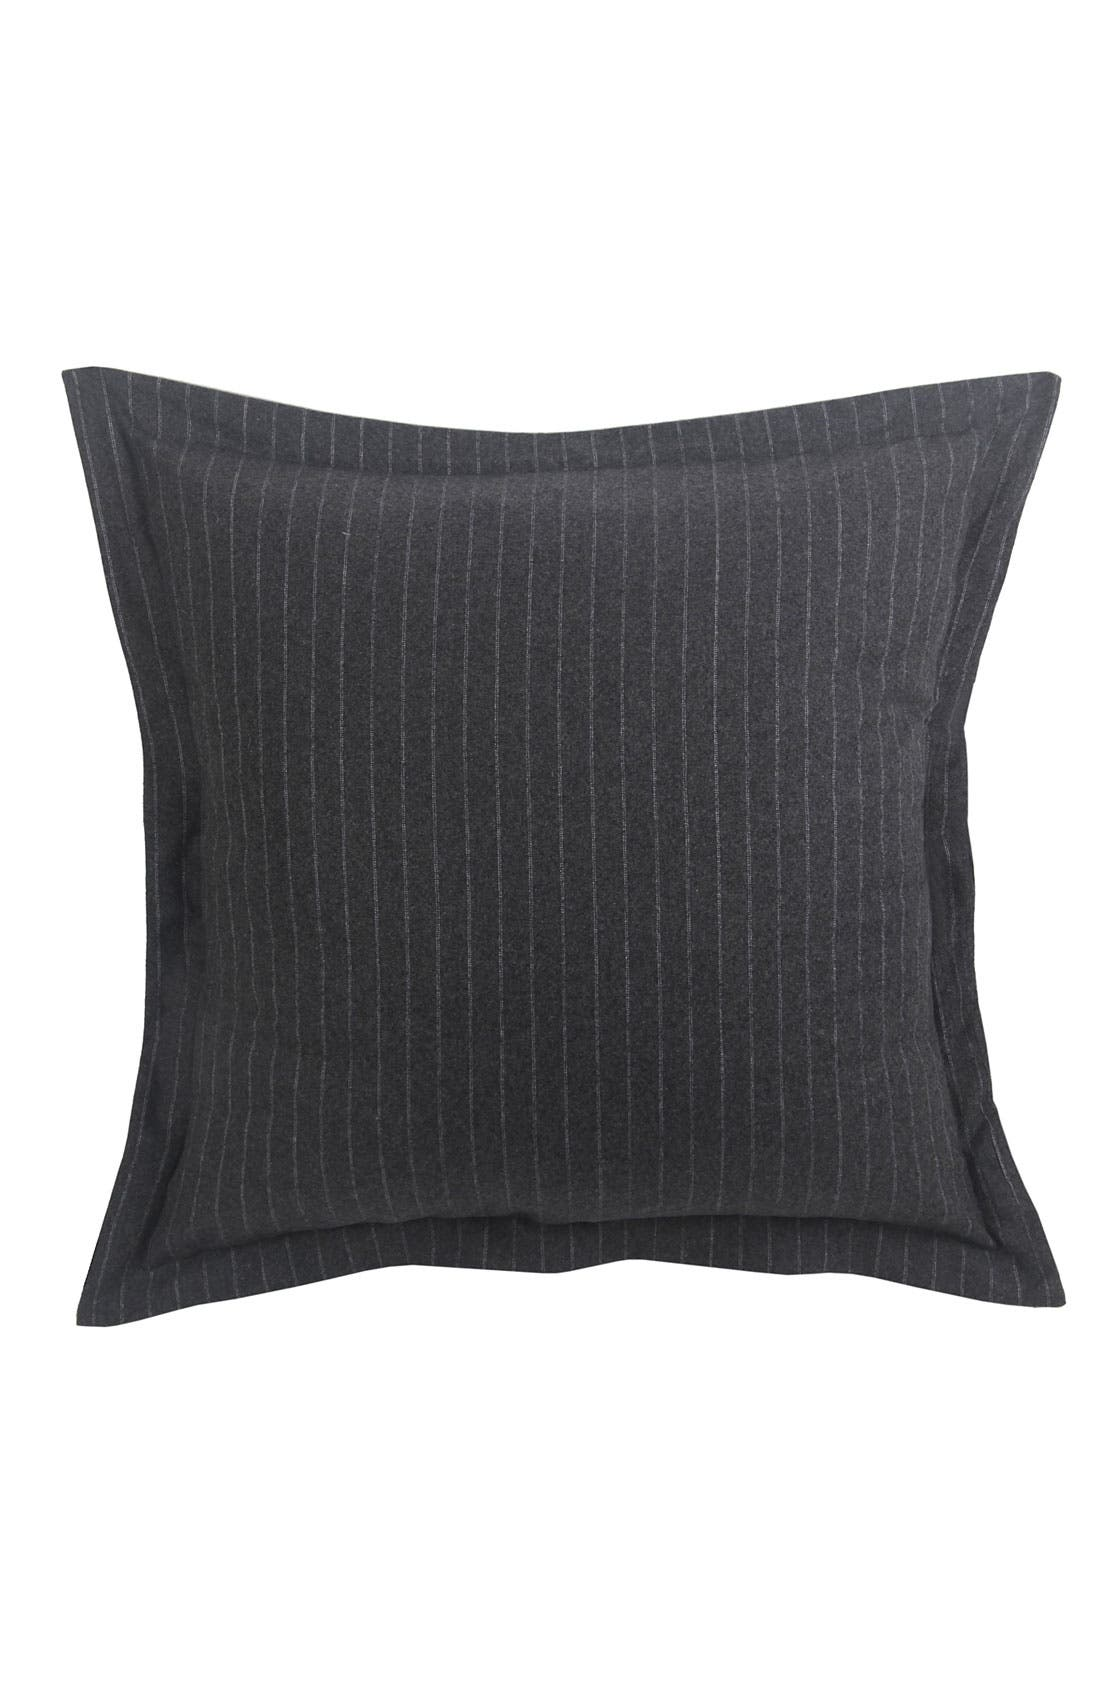 Alternate Image 1 Selected - Blissliving Home 'Legend' Euro Pillow